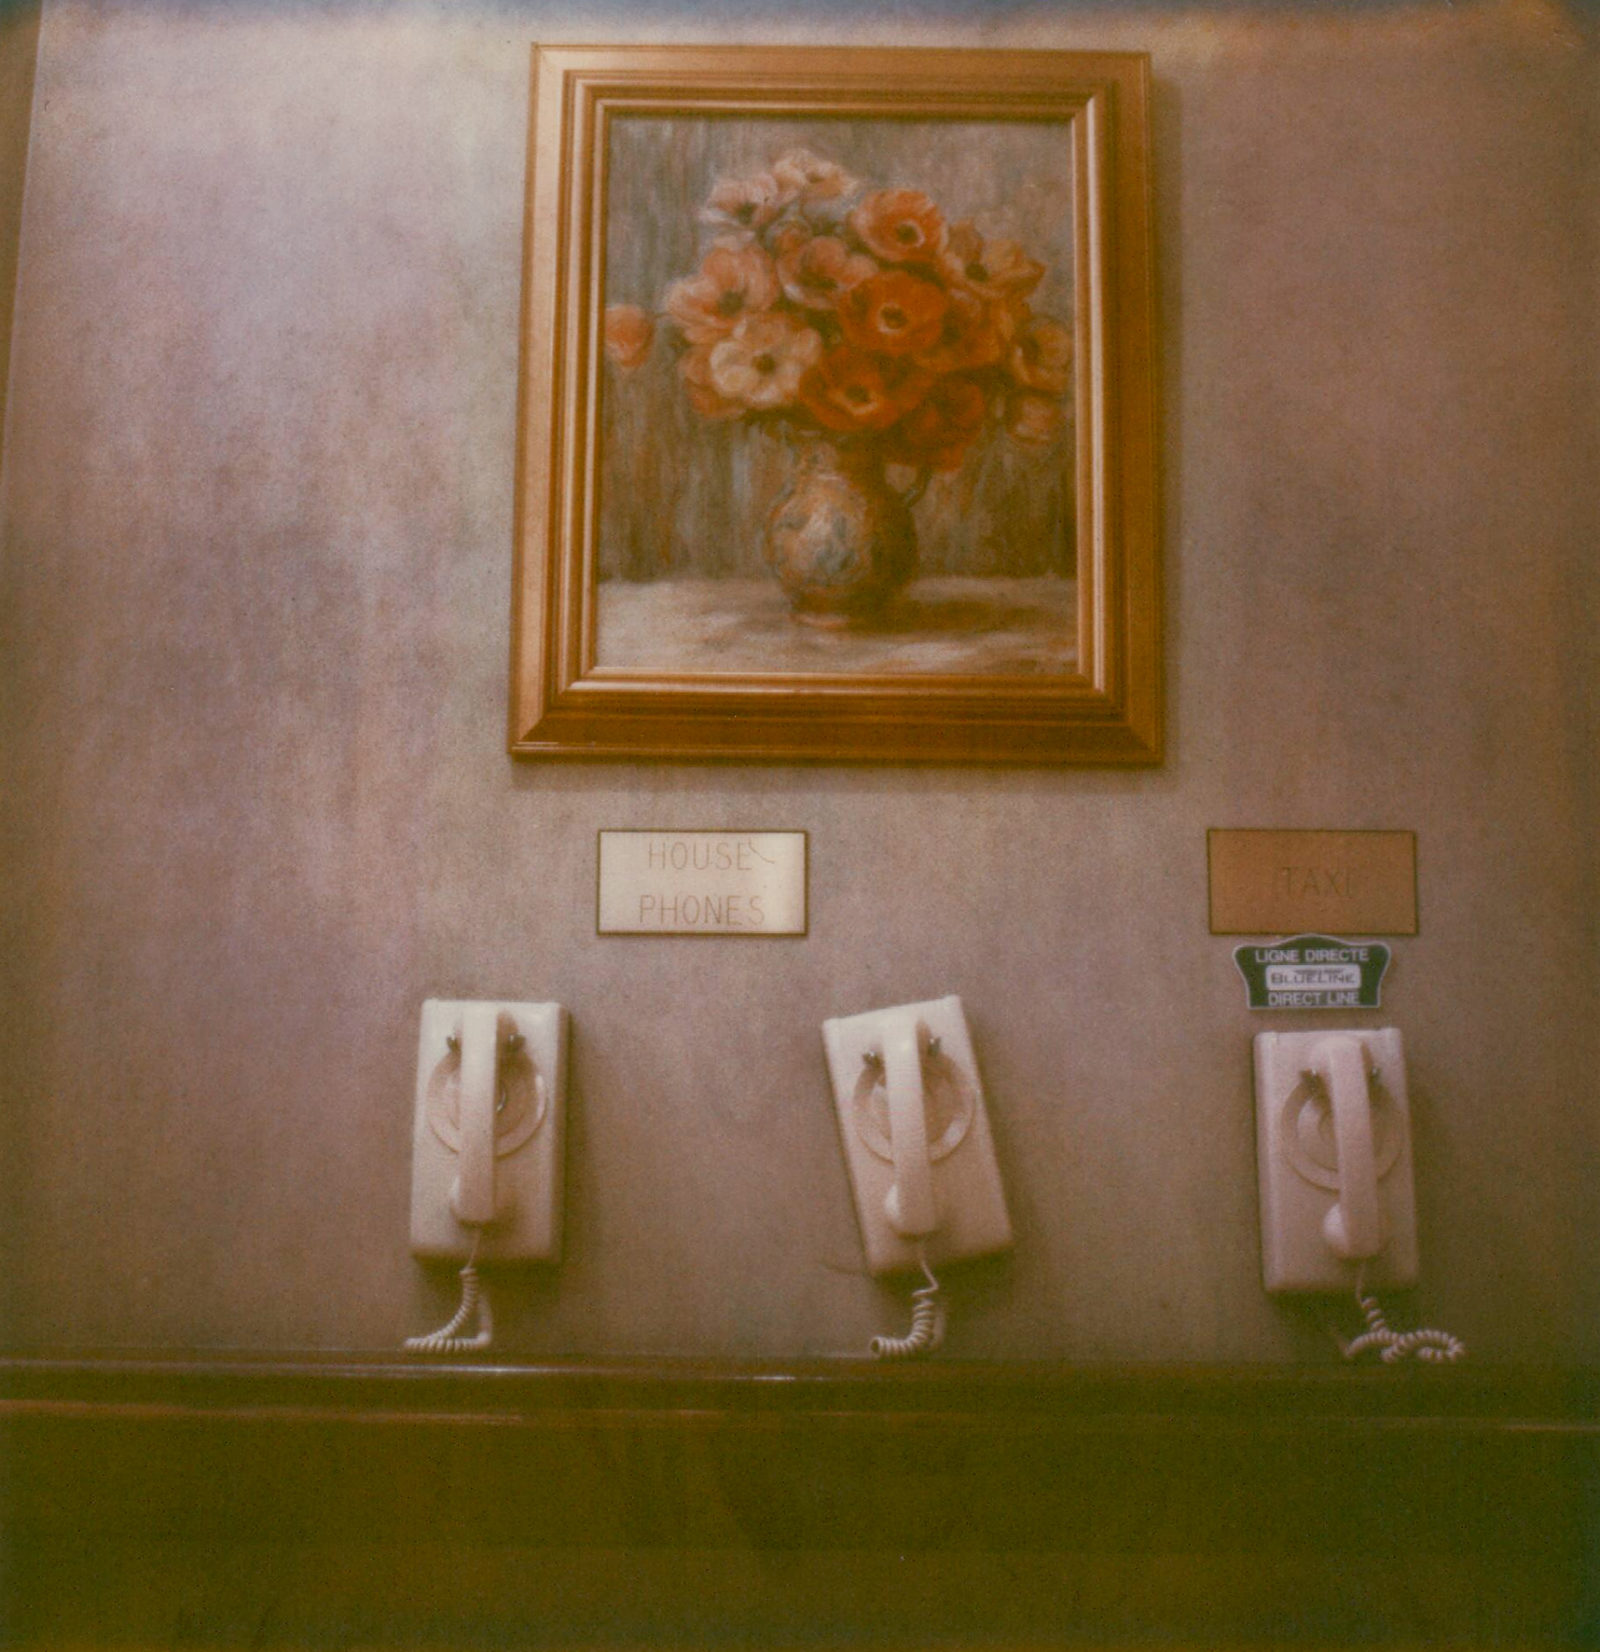 House Phones - Brunswick USA